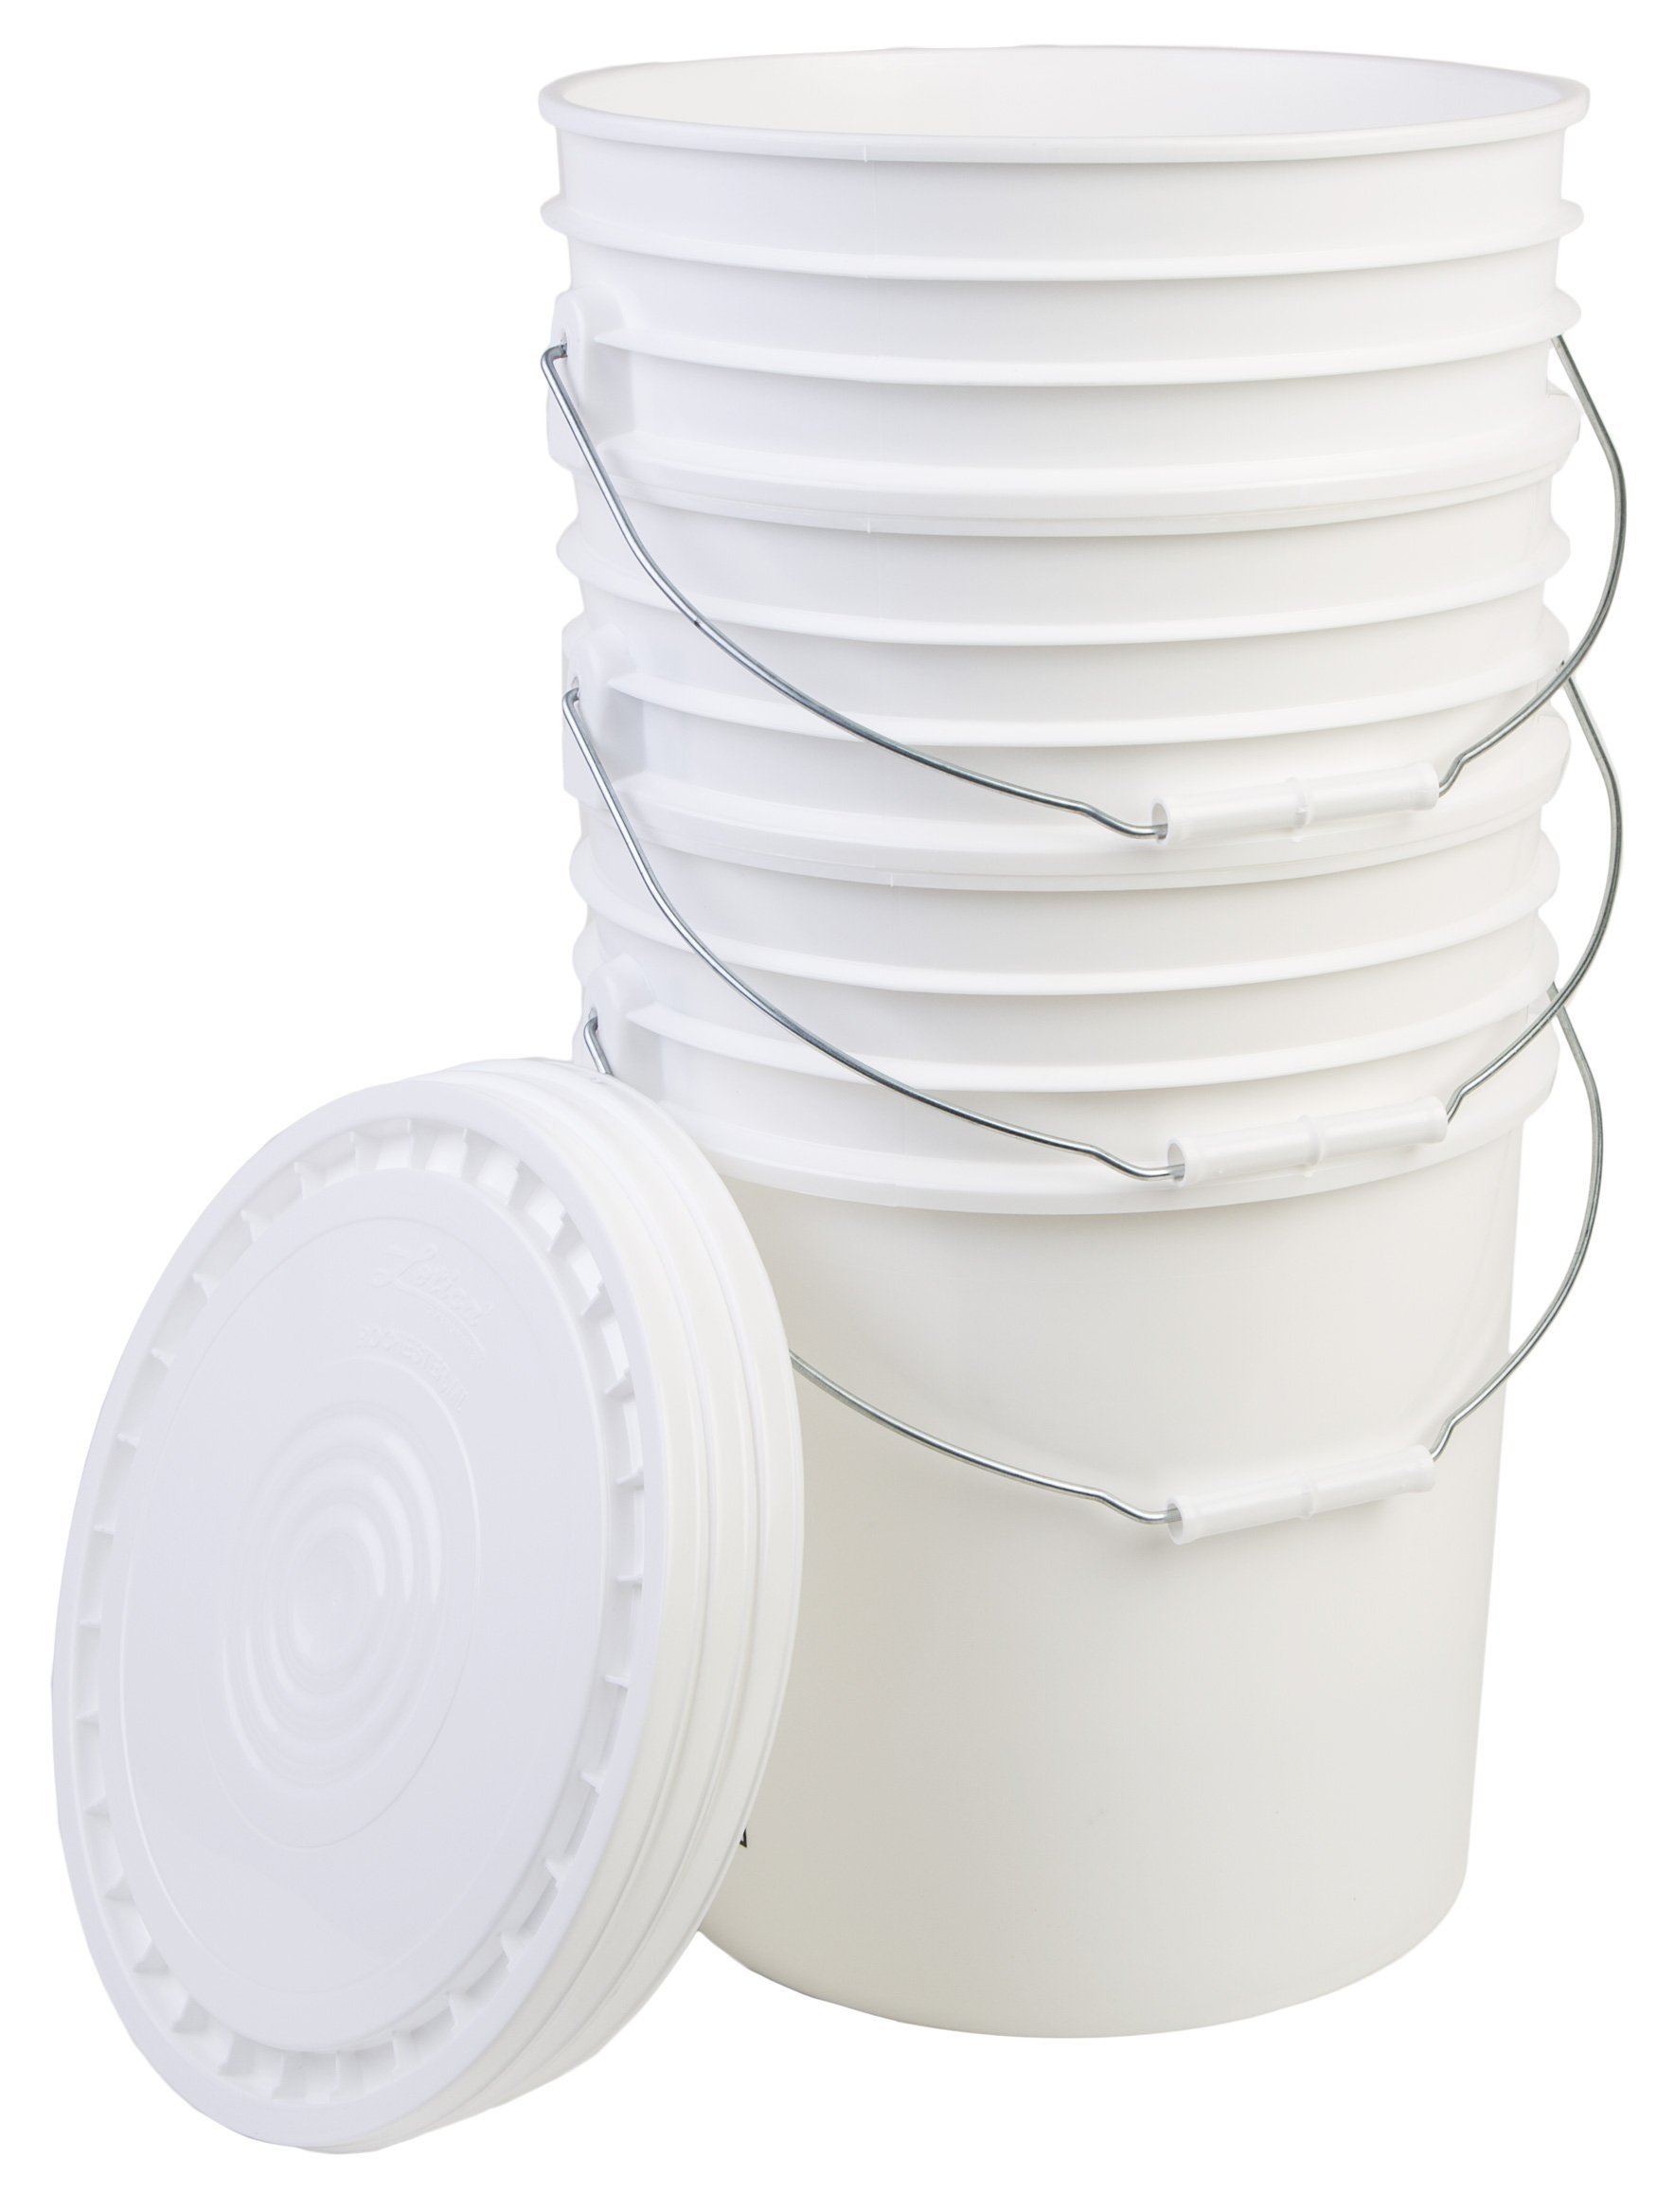 Hudson Exchange Premium 5 Gallon Bucket with Lid, HDPE, White, 3 Pack